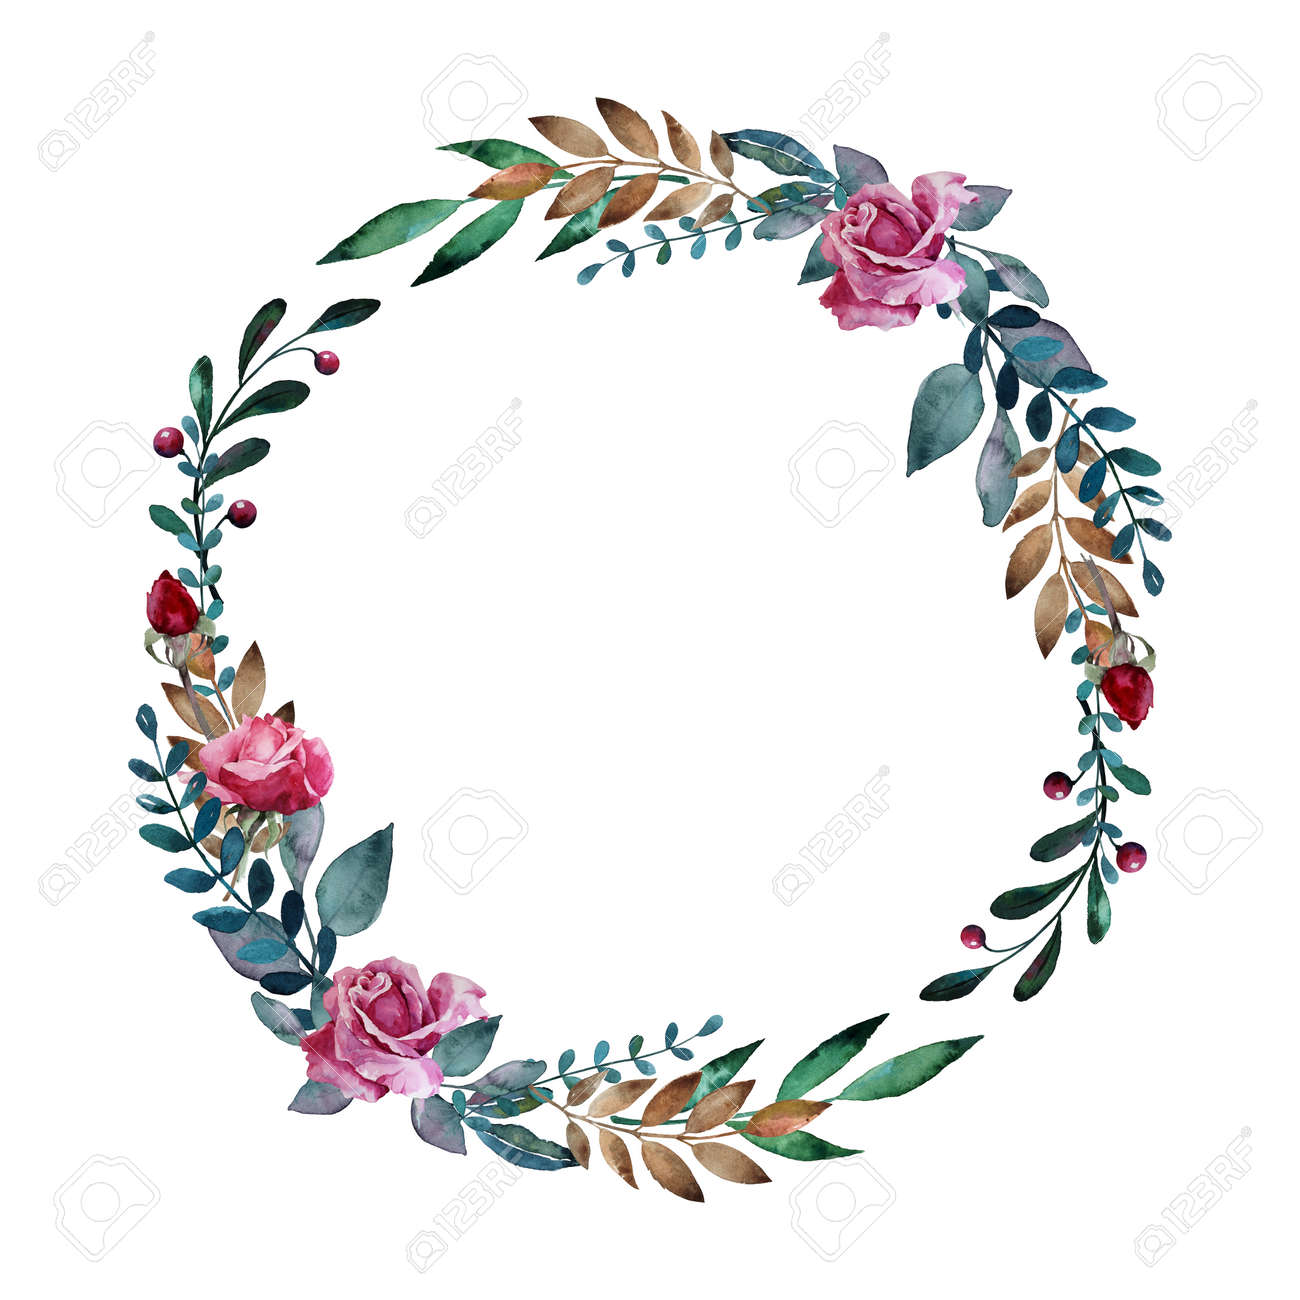 Watercolor floral wreath with pink roses, leaves and berries. Hand drawn round floral frame - 166705528